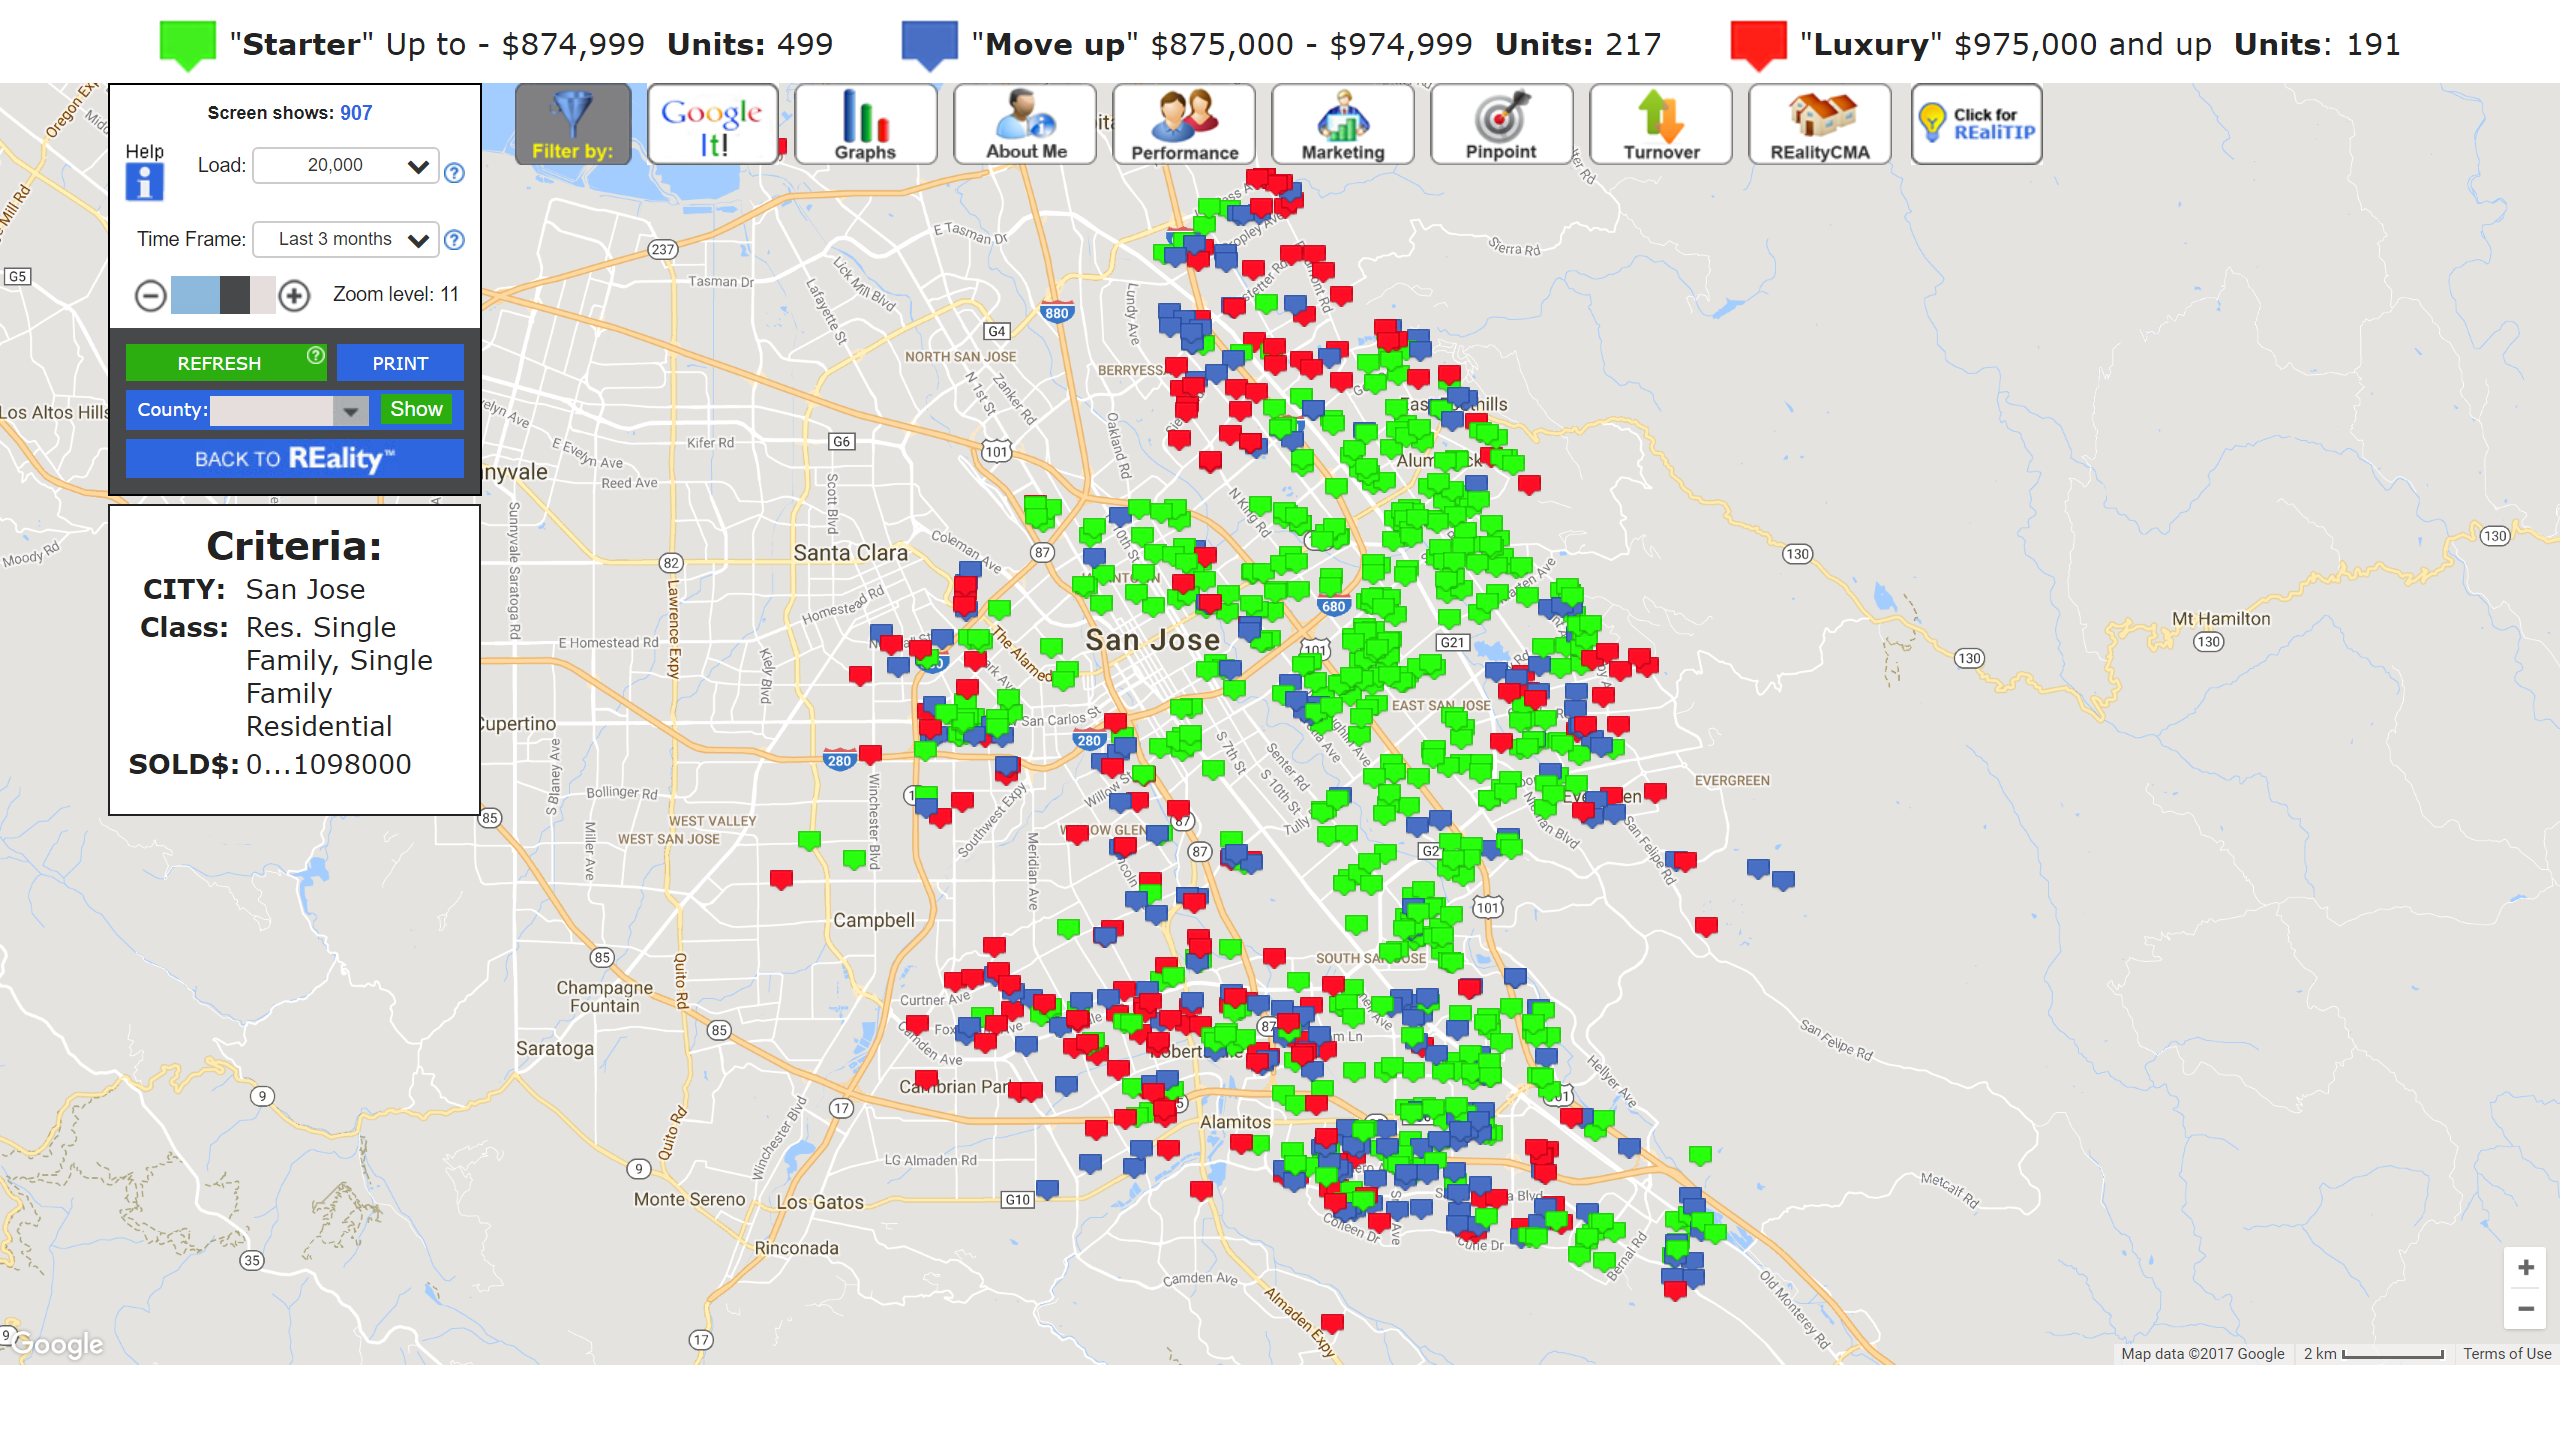 SAN JOSE REAL ESTATE MARKET UPDATE STARTER HOME SALES MAP NOVEMBER 2017